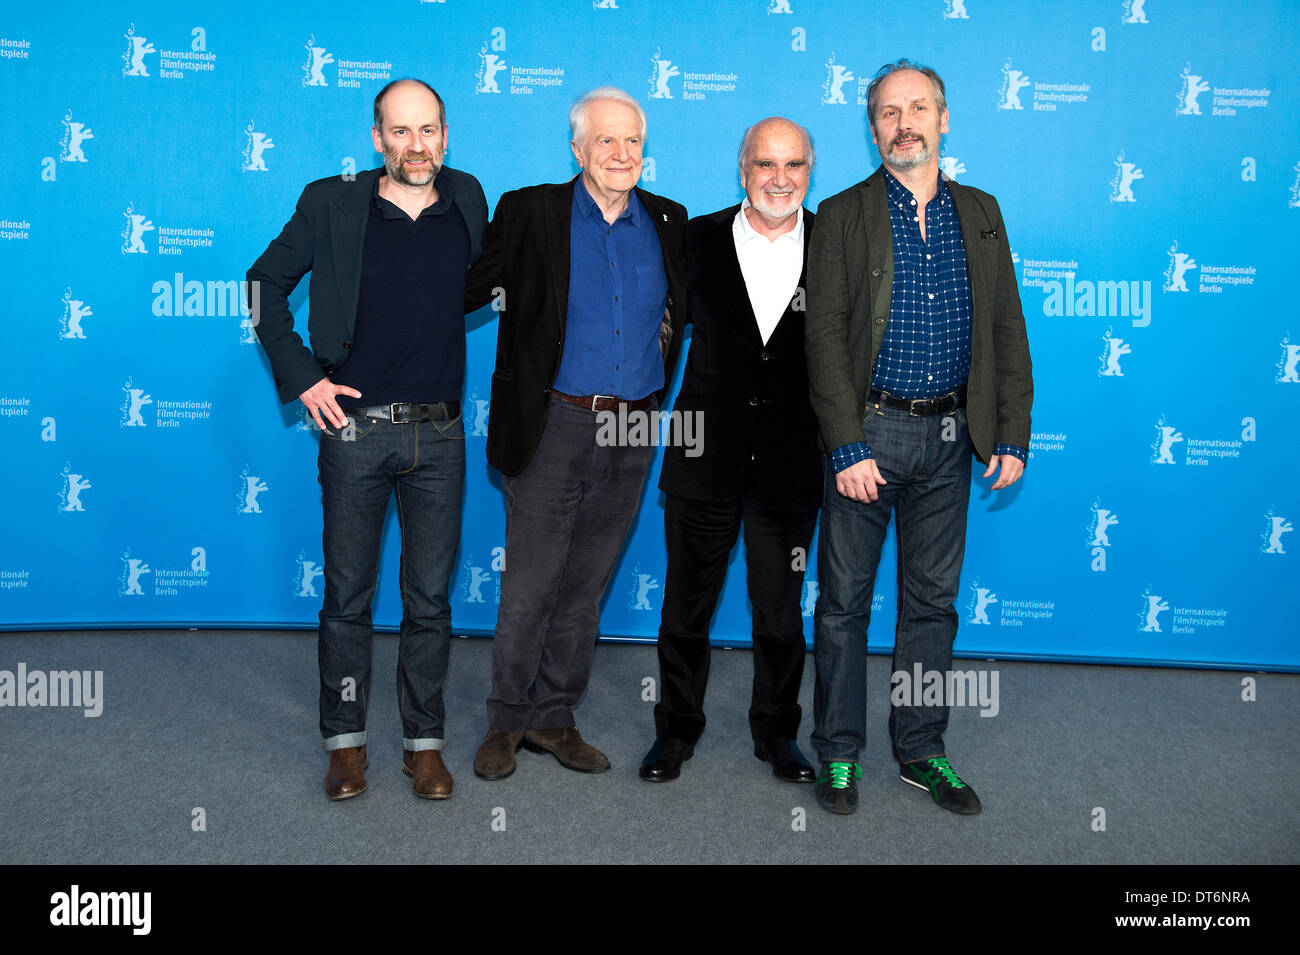 Berlin, Germany. February 10th 2014.  AIMER, BOIRE ET CHANTER in the 64th Berlinale Film Festival with Sabine Azéma,Sandrine Kiberlain,Caroline Silhol,Hippolyte Girardot and André Dussollier product by Jean-Louis Livi.   Goncalo Silva/ Alamy Live News - Stock Image